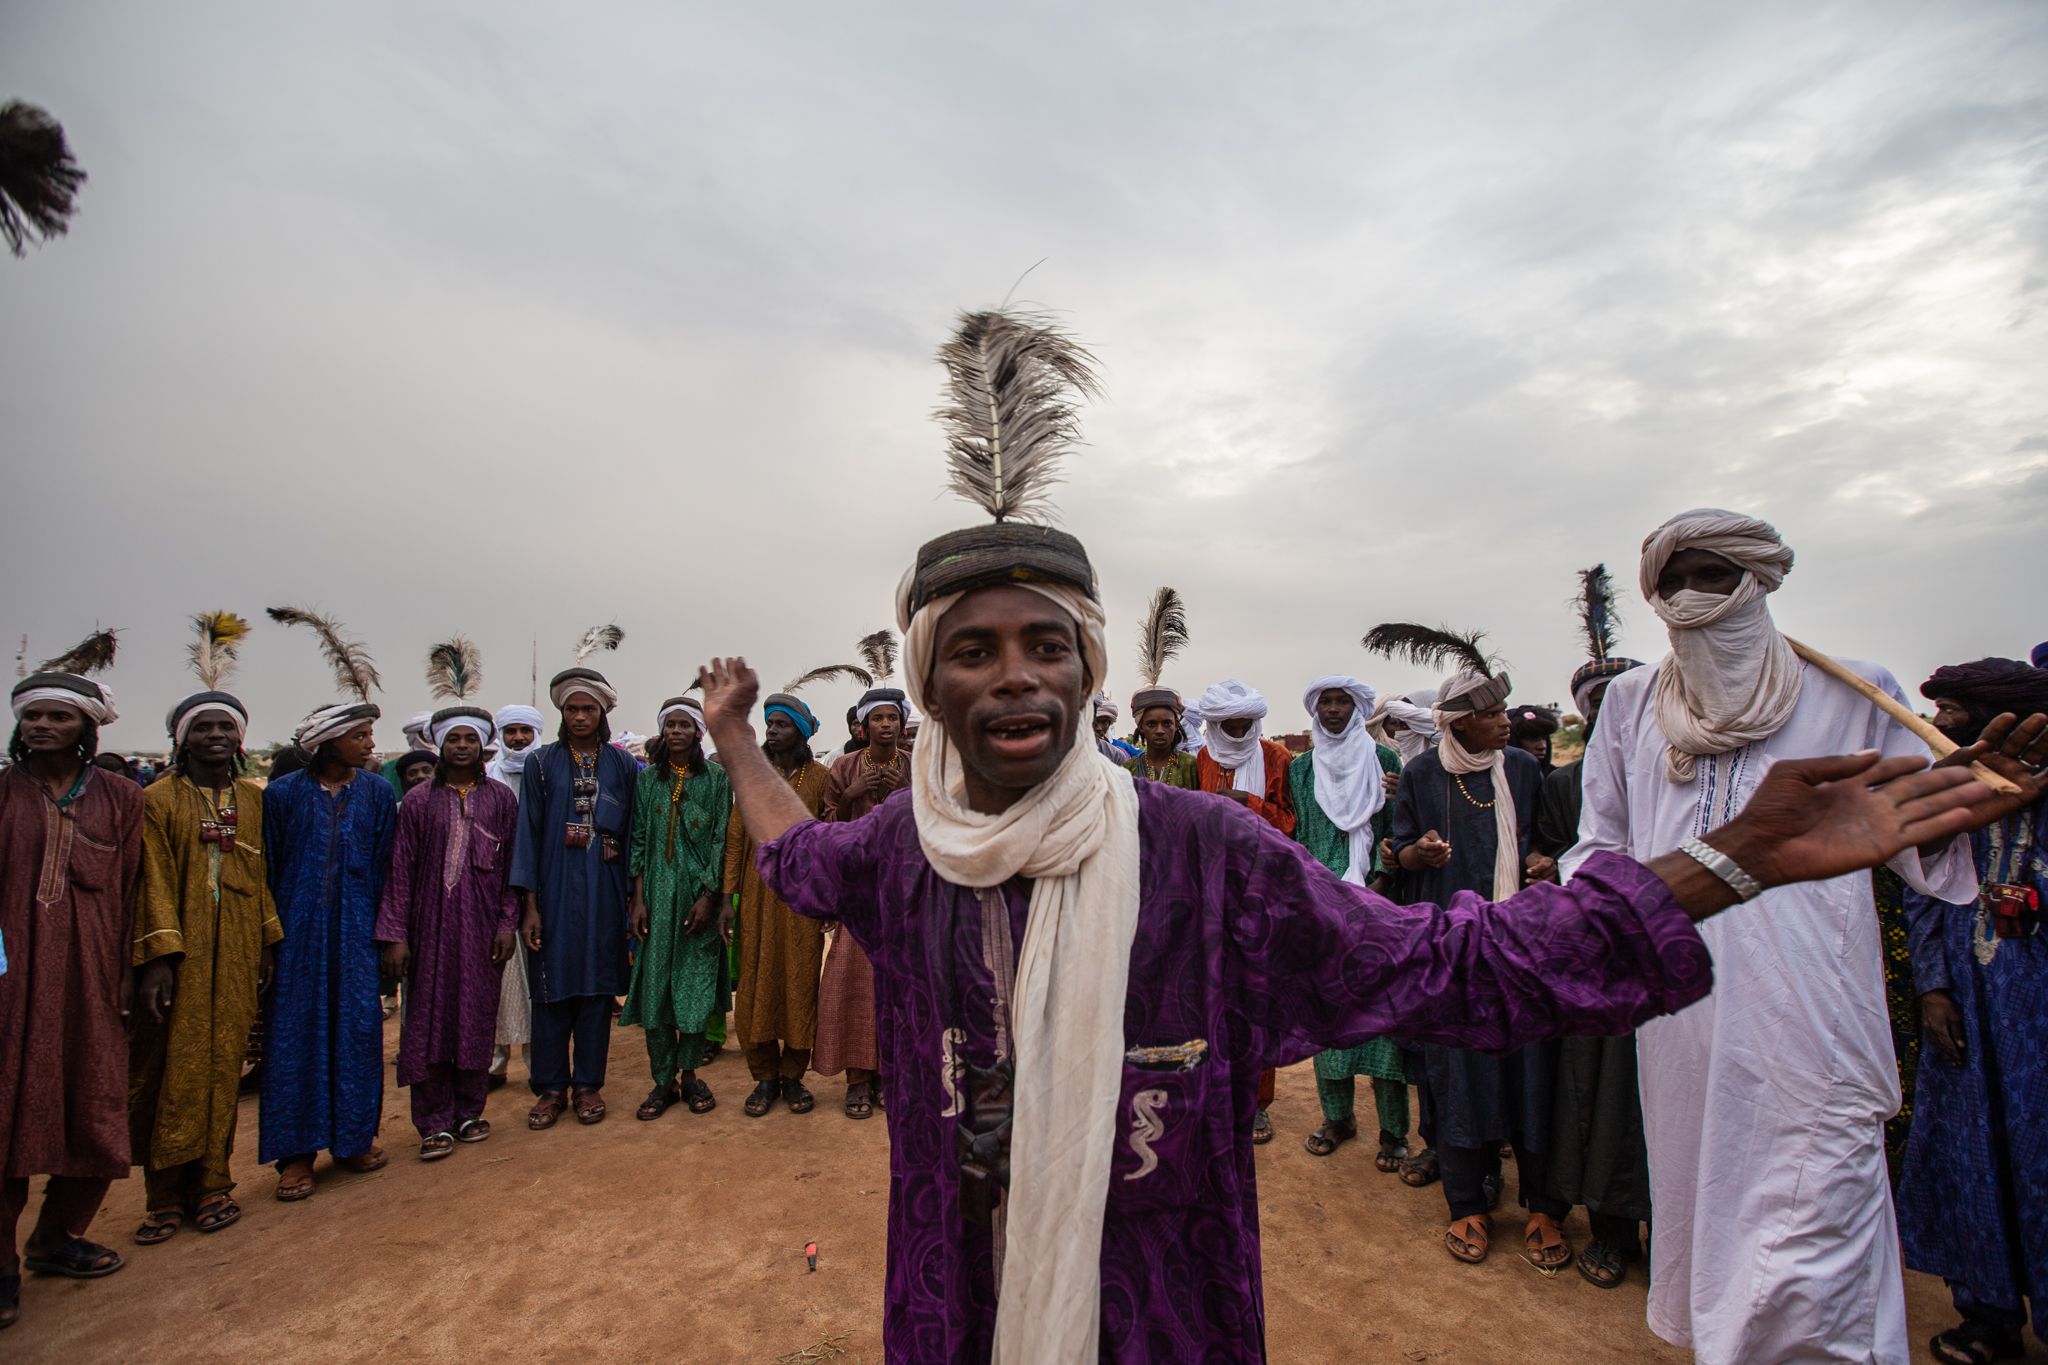 Young Wodaabe men get together to show their skills singing, dancing, and seducing the crowd.